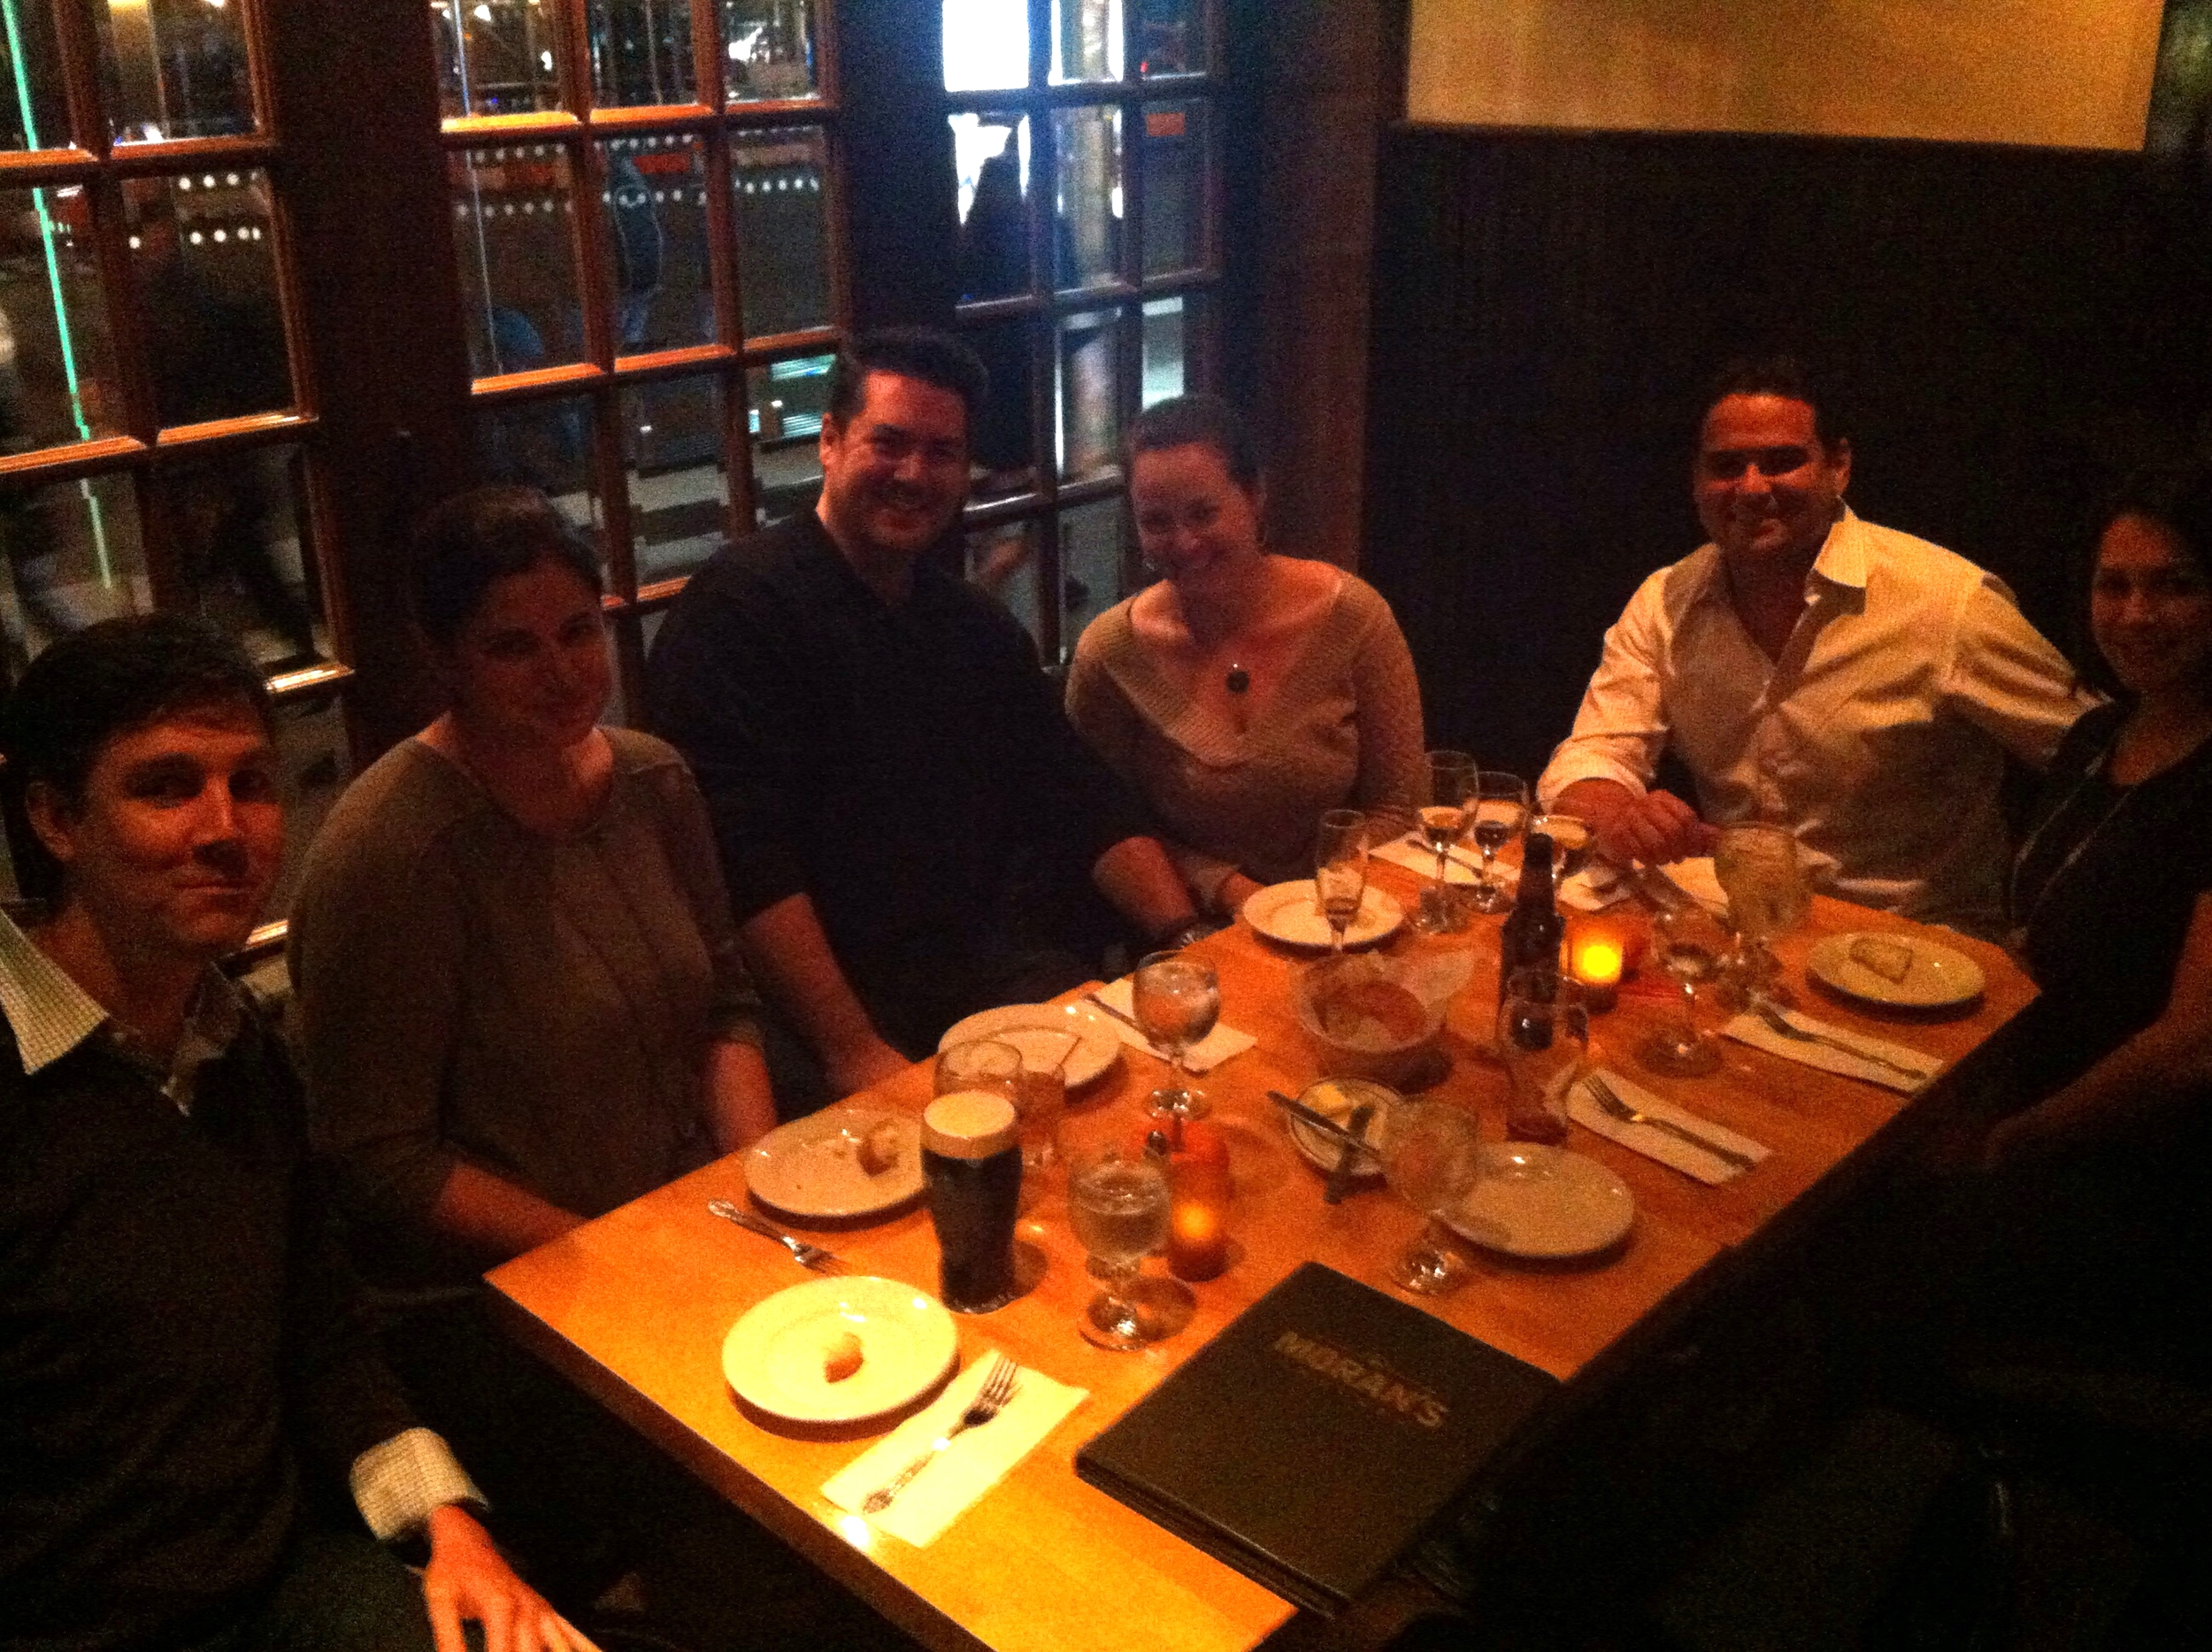 After work drinks with D&B staff (and plus ones). Liz is telling some great H-1B cap stories. Cheers!